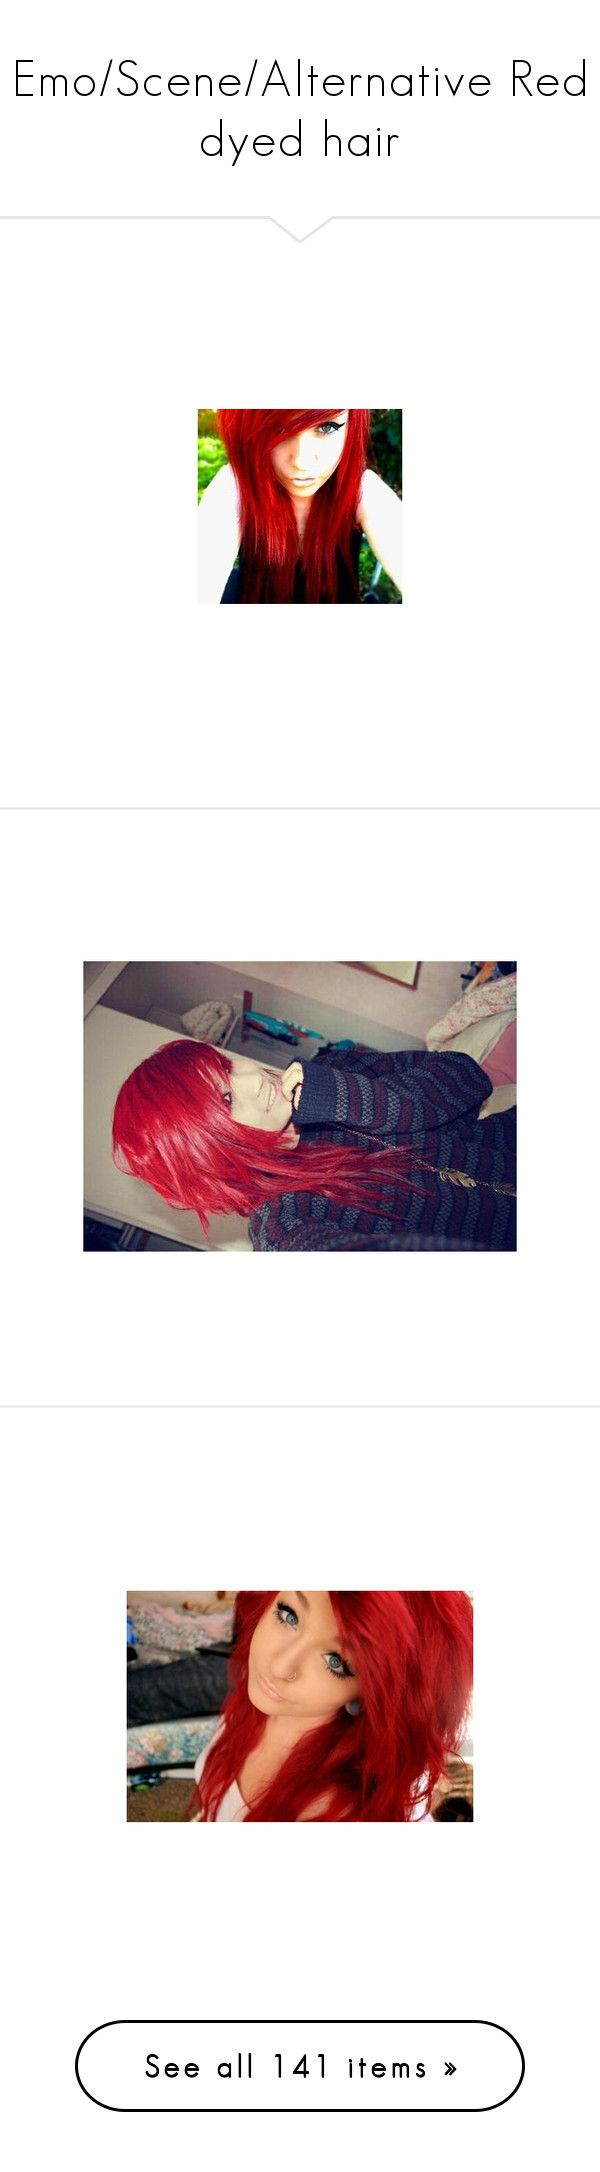 """Emo/Scene/Alternative Red dyed hair"" by shelbybauer ❤ liked on Polyvore featuring hair, girls, hair style, people, red hair, random, beauty products, haircare, pictures and people/hair"